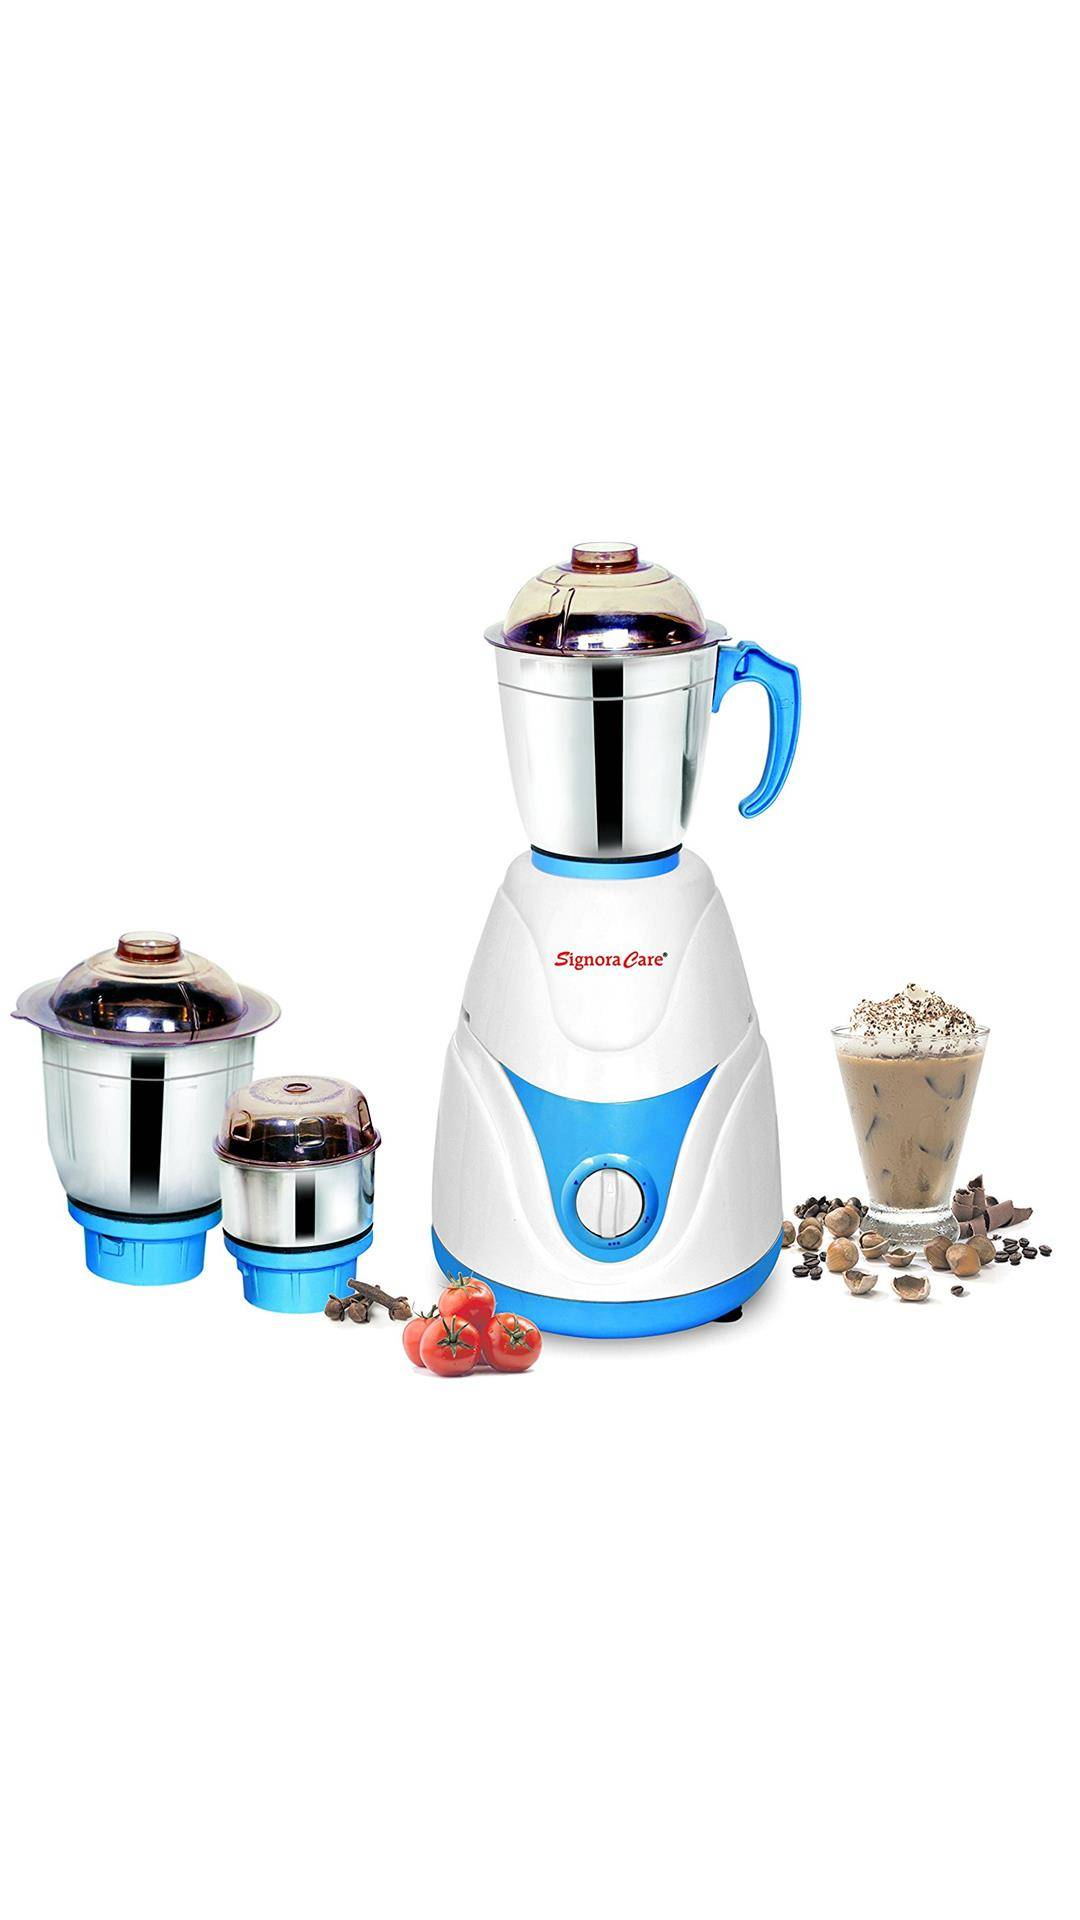 Http Kids Suggestions Added Amazon Buy Signora Hand Vacuum Paytm Signoracare Eco Plus 500 W Mixer Grinder White Blue3 Jar At Rs 749 Only